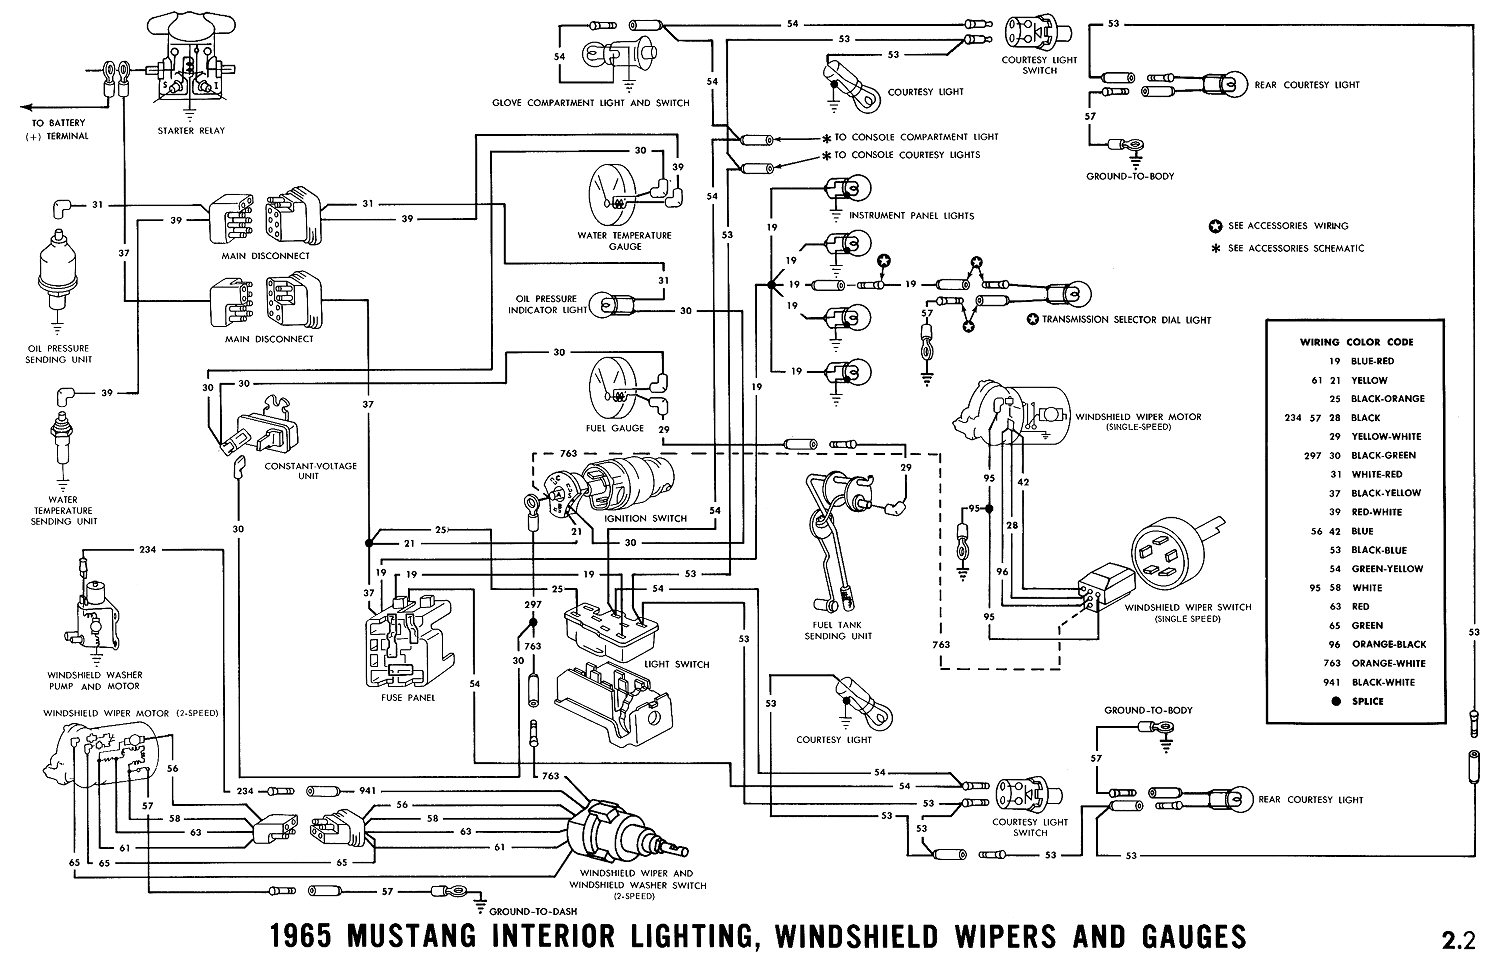 2011 Ford Fiesta Wiring Library Fuse Box Diagram 1965 Mustang Diagrams Average Joe Restoration Ac